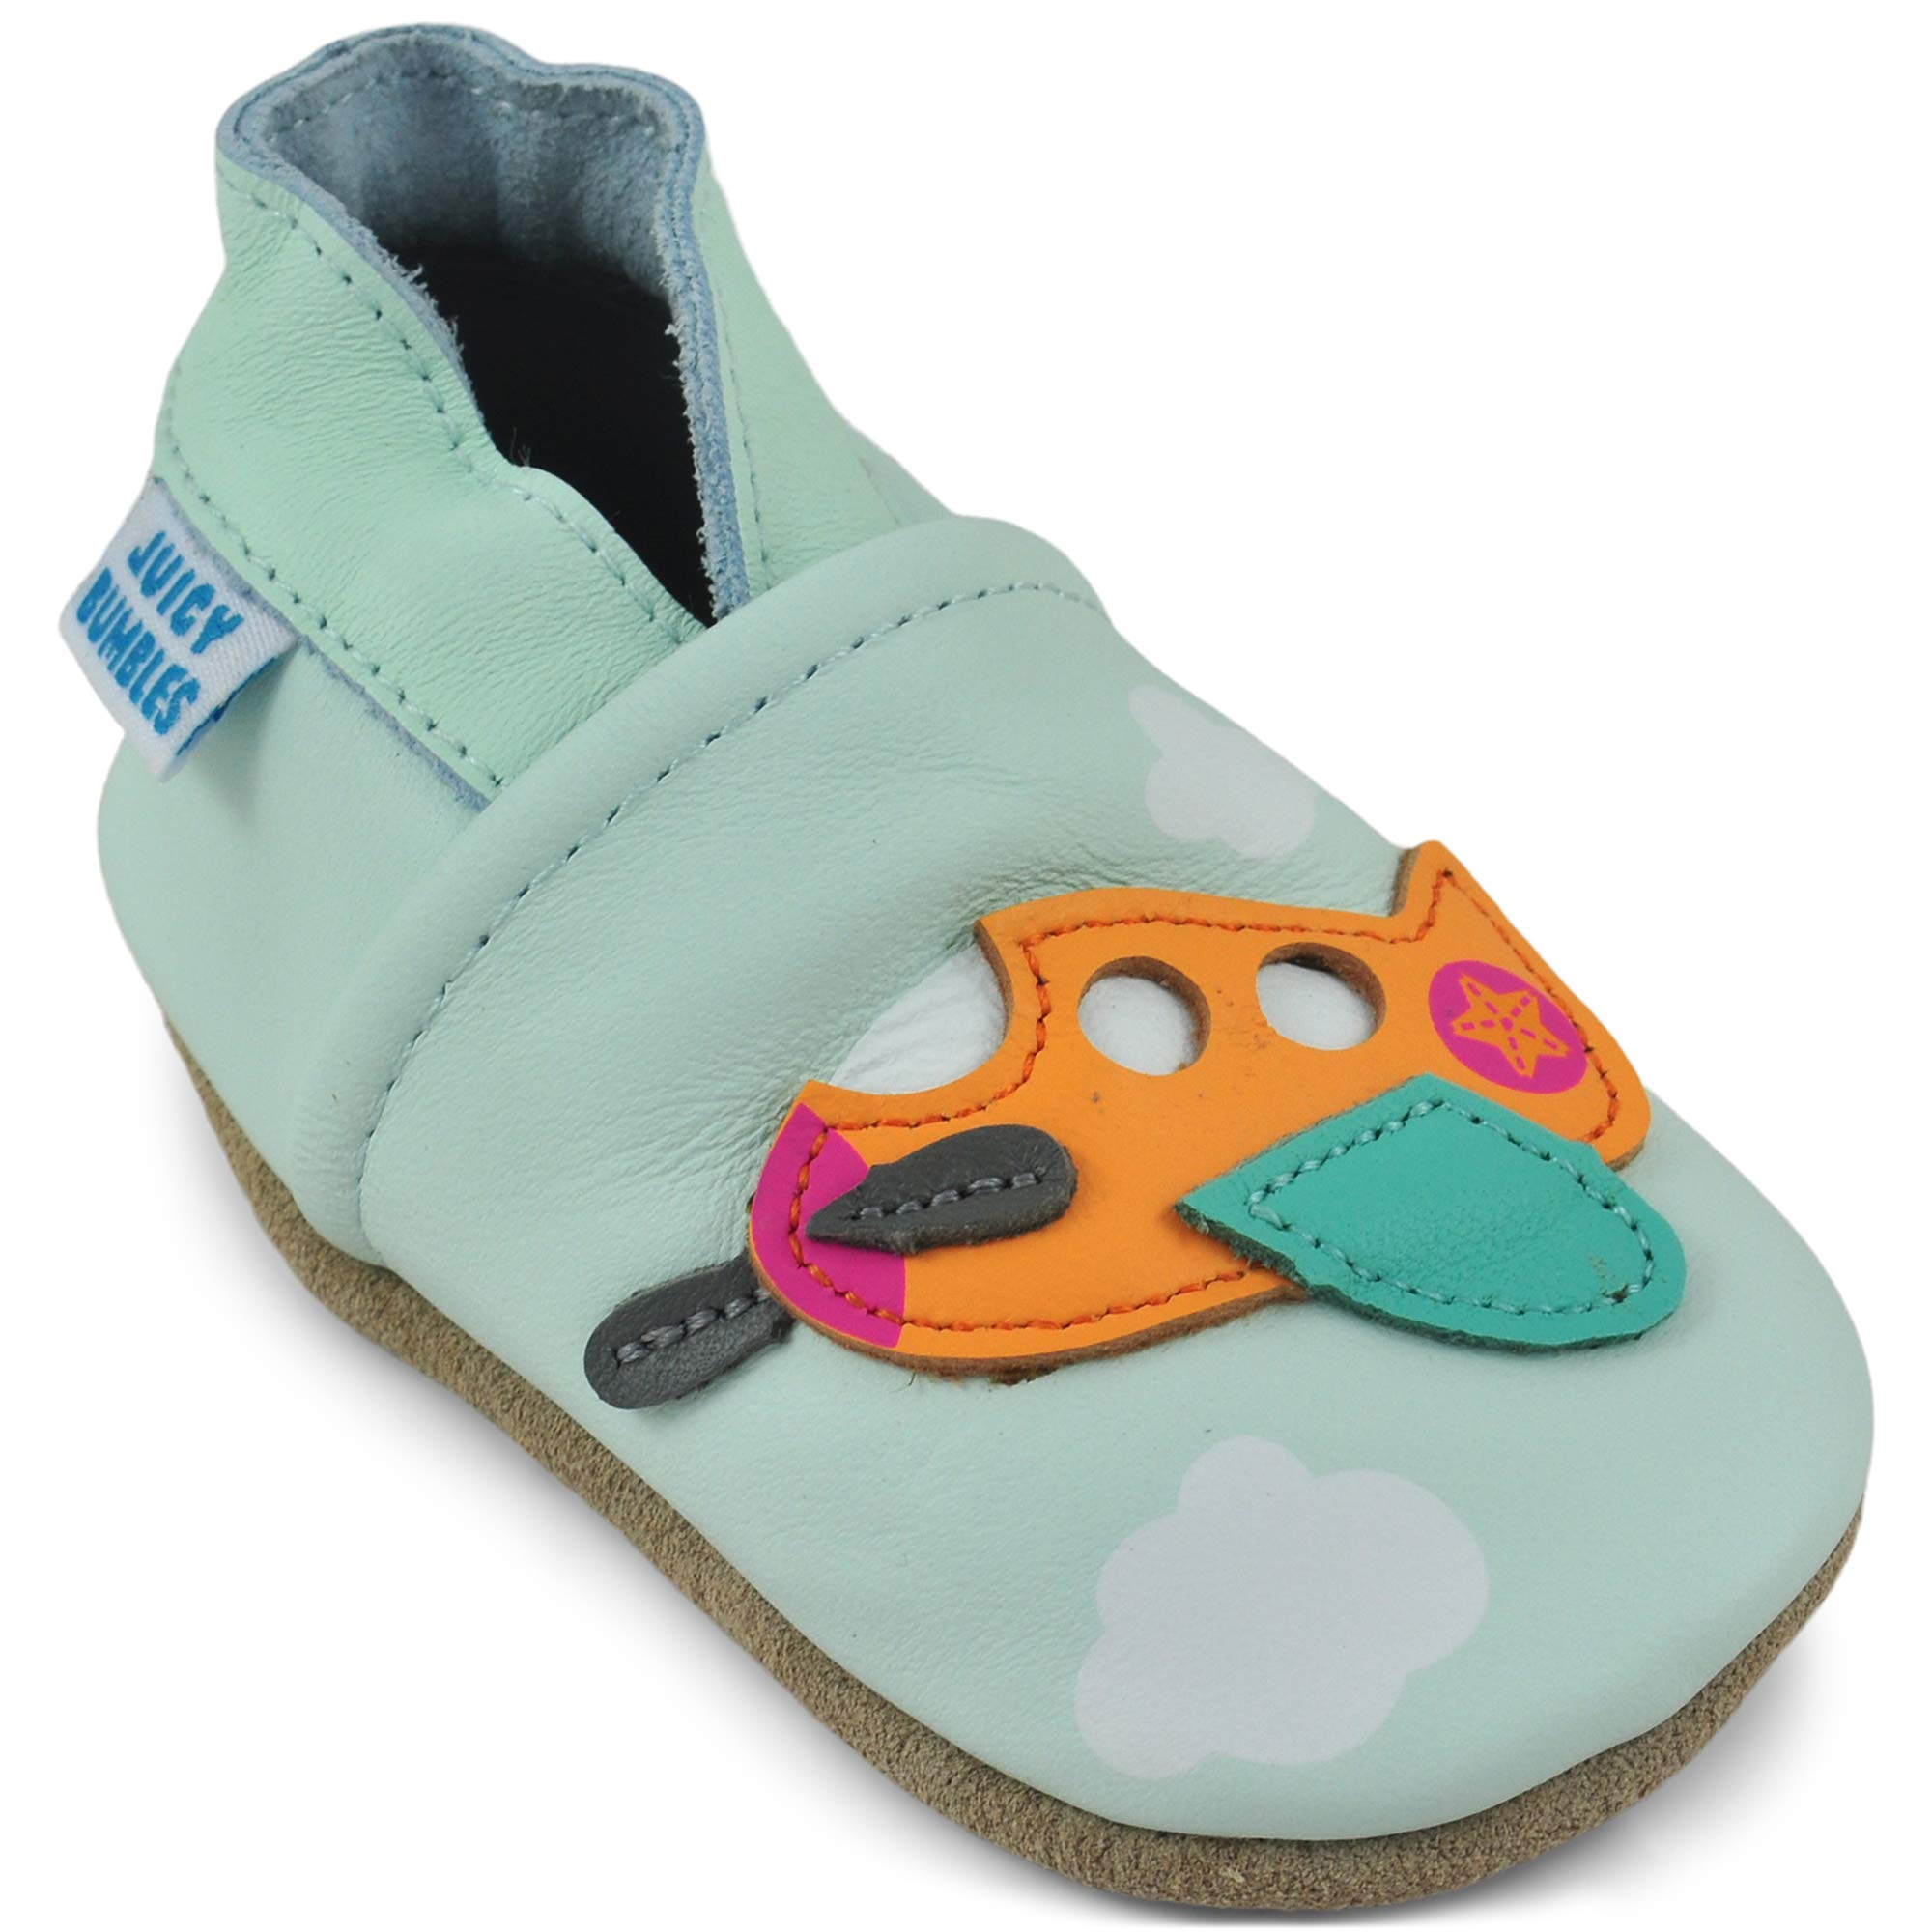 Baby Shoes with Soft Sole - Baby Girl